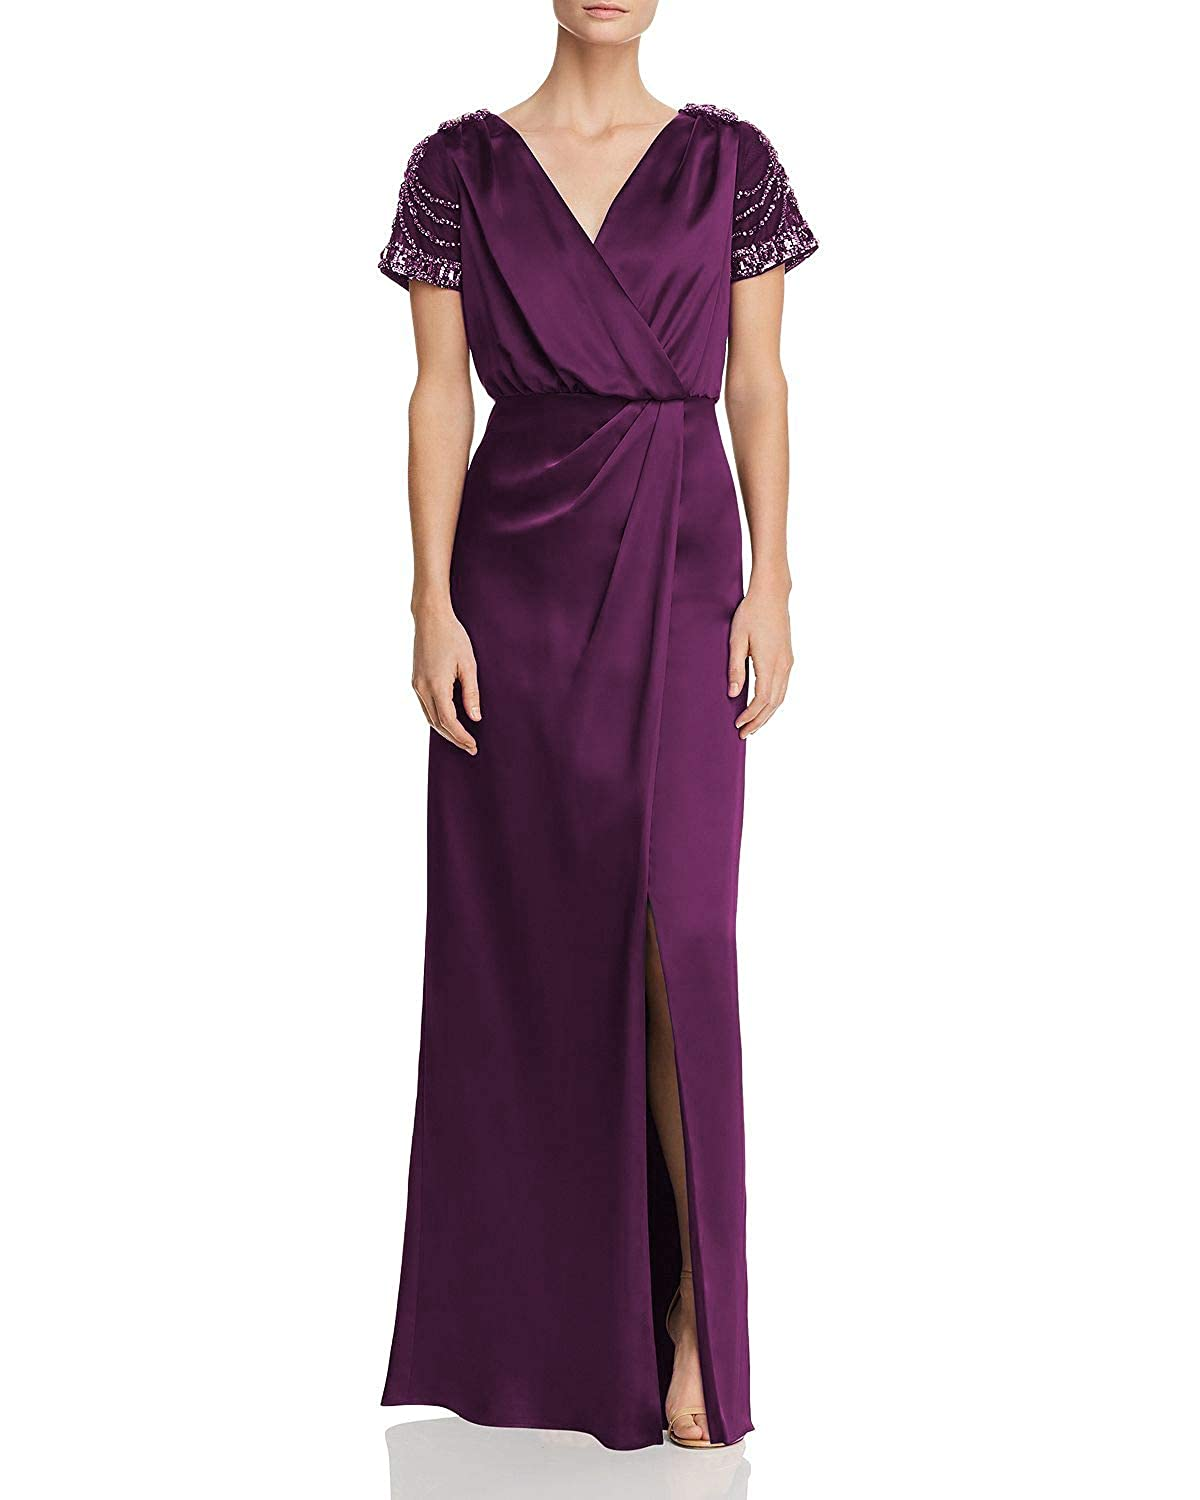 Purple Wanshaqin Women's Sheer Embellished Caps VNeck Evening Gown for Wedding Party Occasions